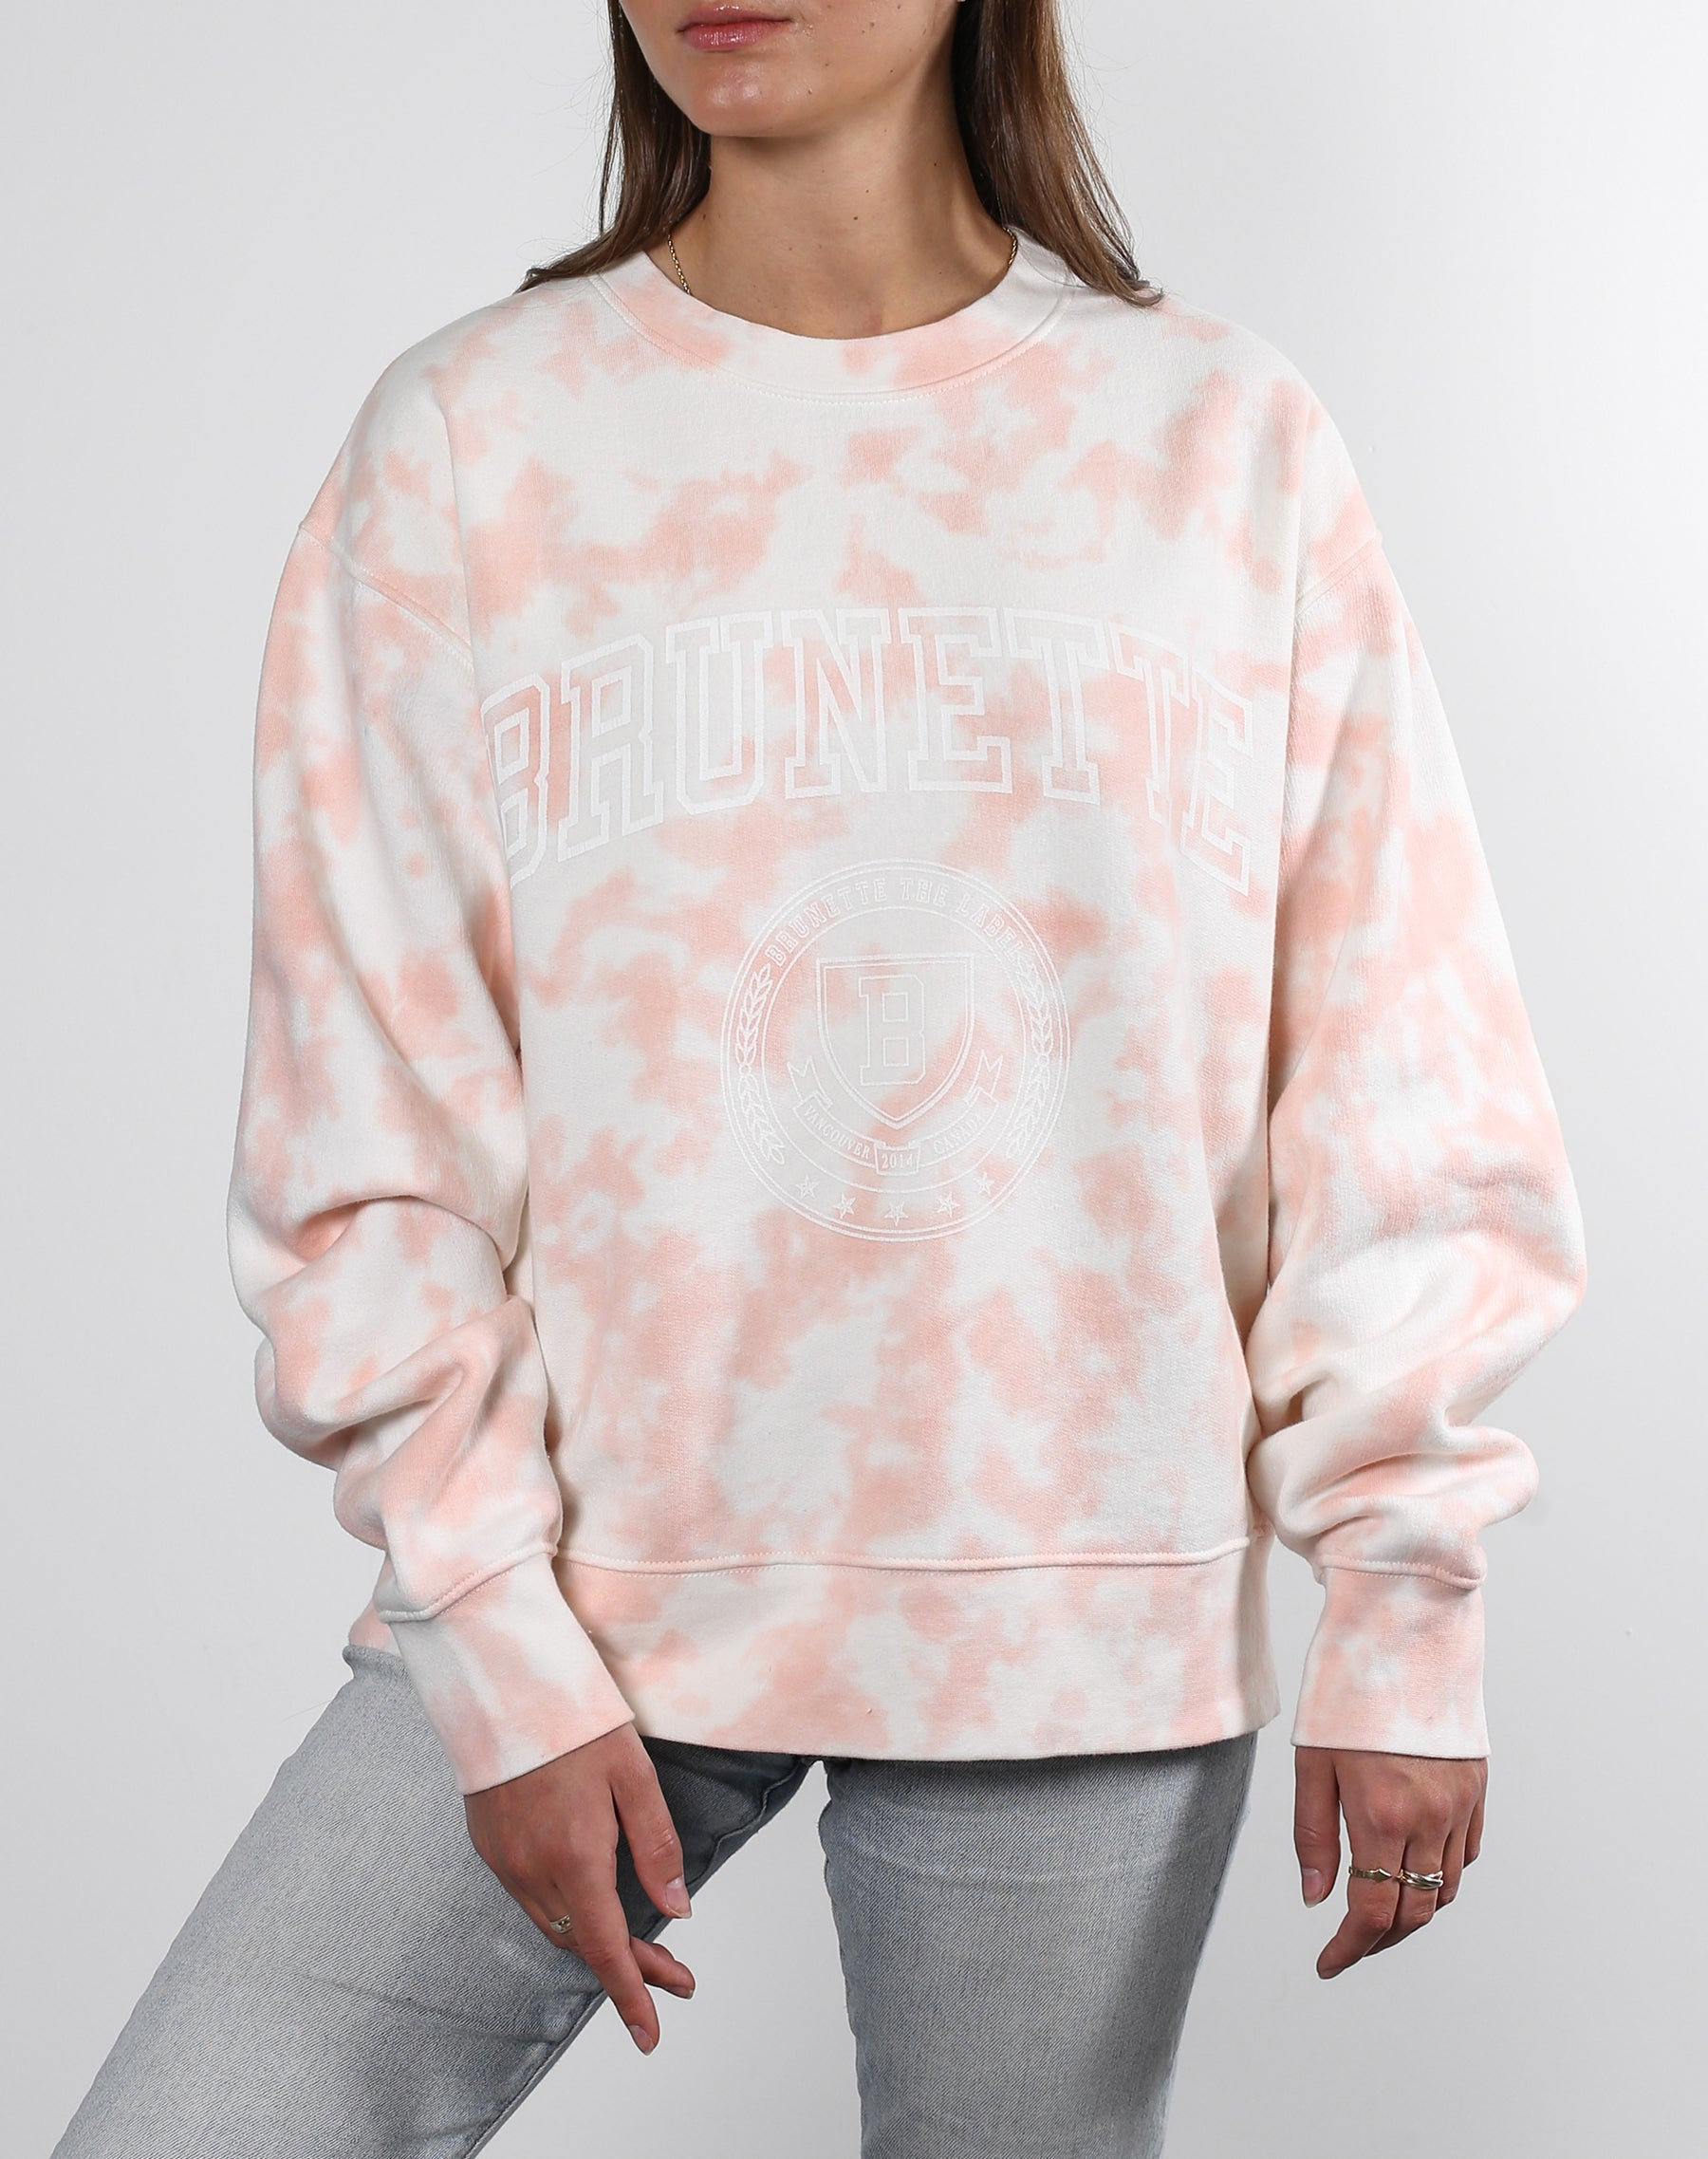 This is an Ecommerce photo of the Brunette Step Sister Crew Neck Sweatshirt in Pink Marble Tie Dye